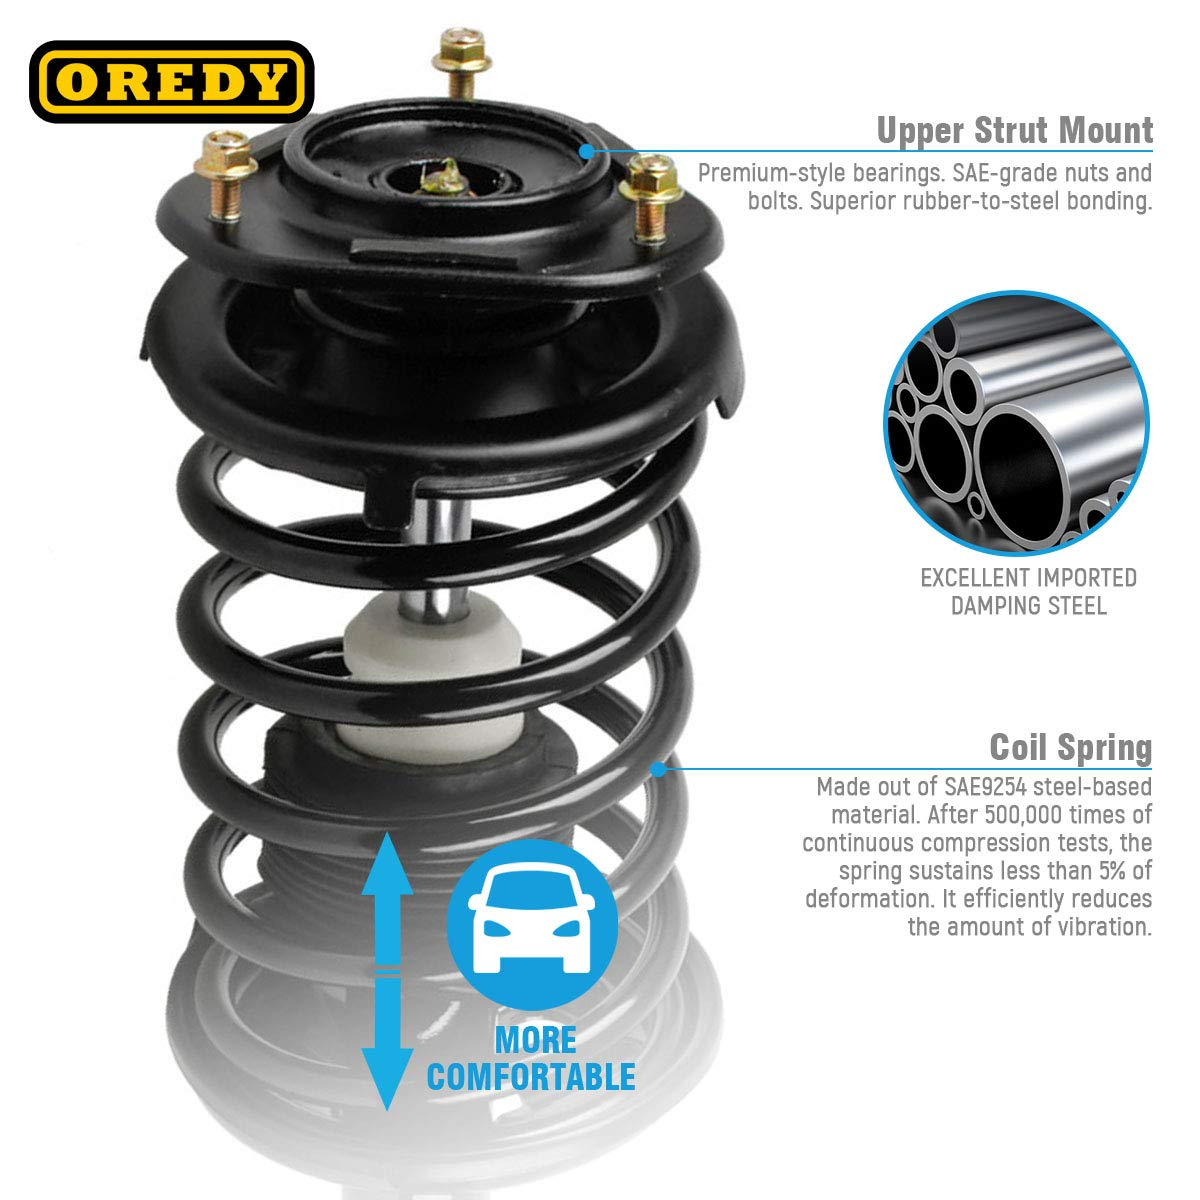 OREDY Rear Pair Complete Struts Assembly Shock Coil Spring Kit 171953 Fits for 93 94 95 96 97 98 99 00 01 02 Toyota Corolla Excludes WAGON models 98 99 00 01 02 Chevy Prizm 93 94 95 96 97 Geo Prizm